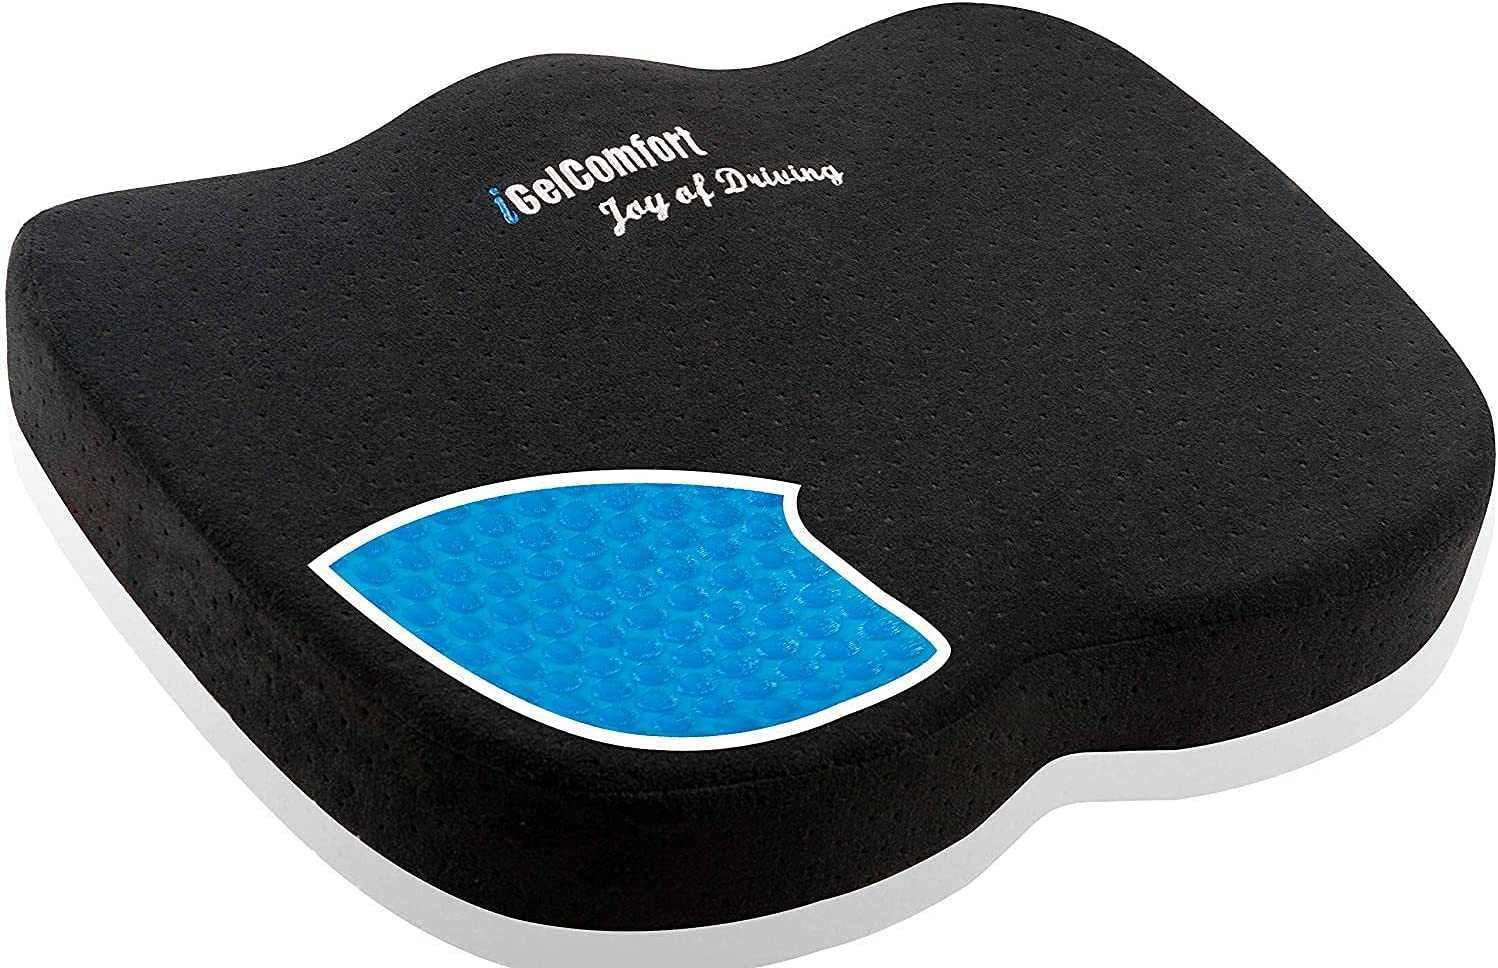 Sojoy Gel Memory Foam Cheap mail Trust order specialty store Seat Cushion and Back Pain Ta Relief for